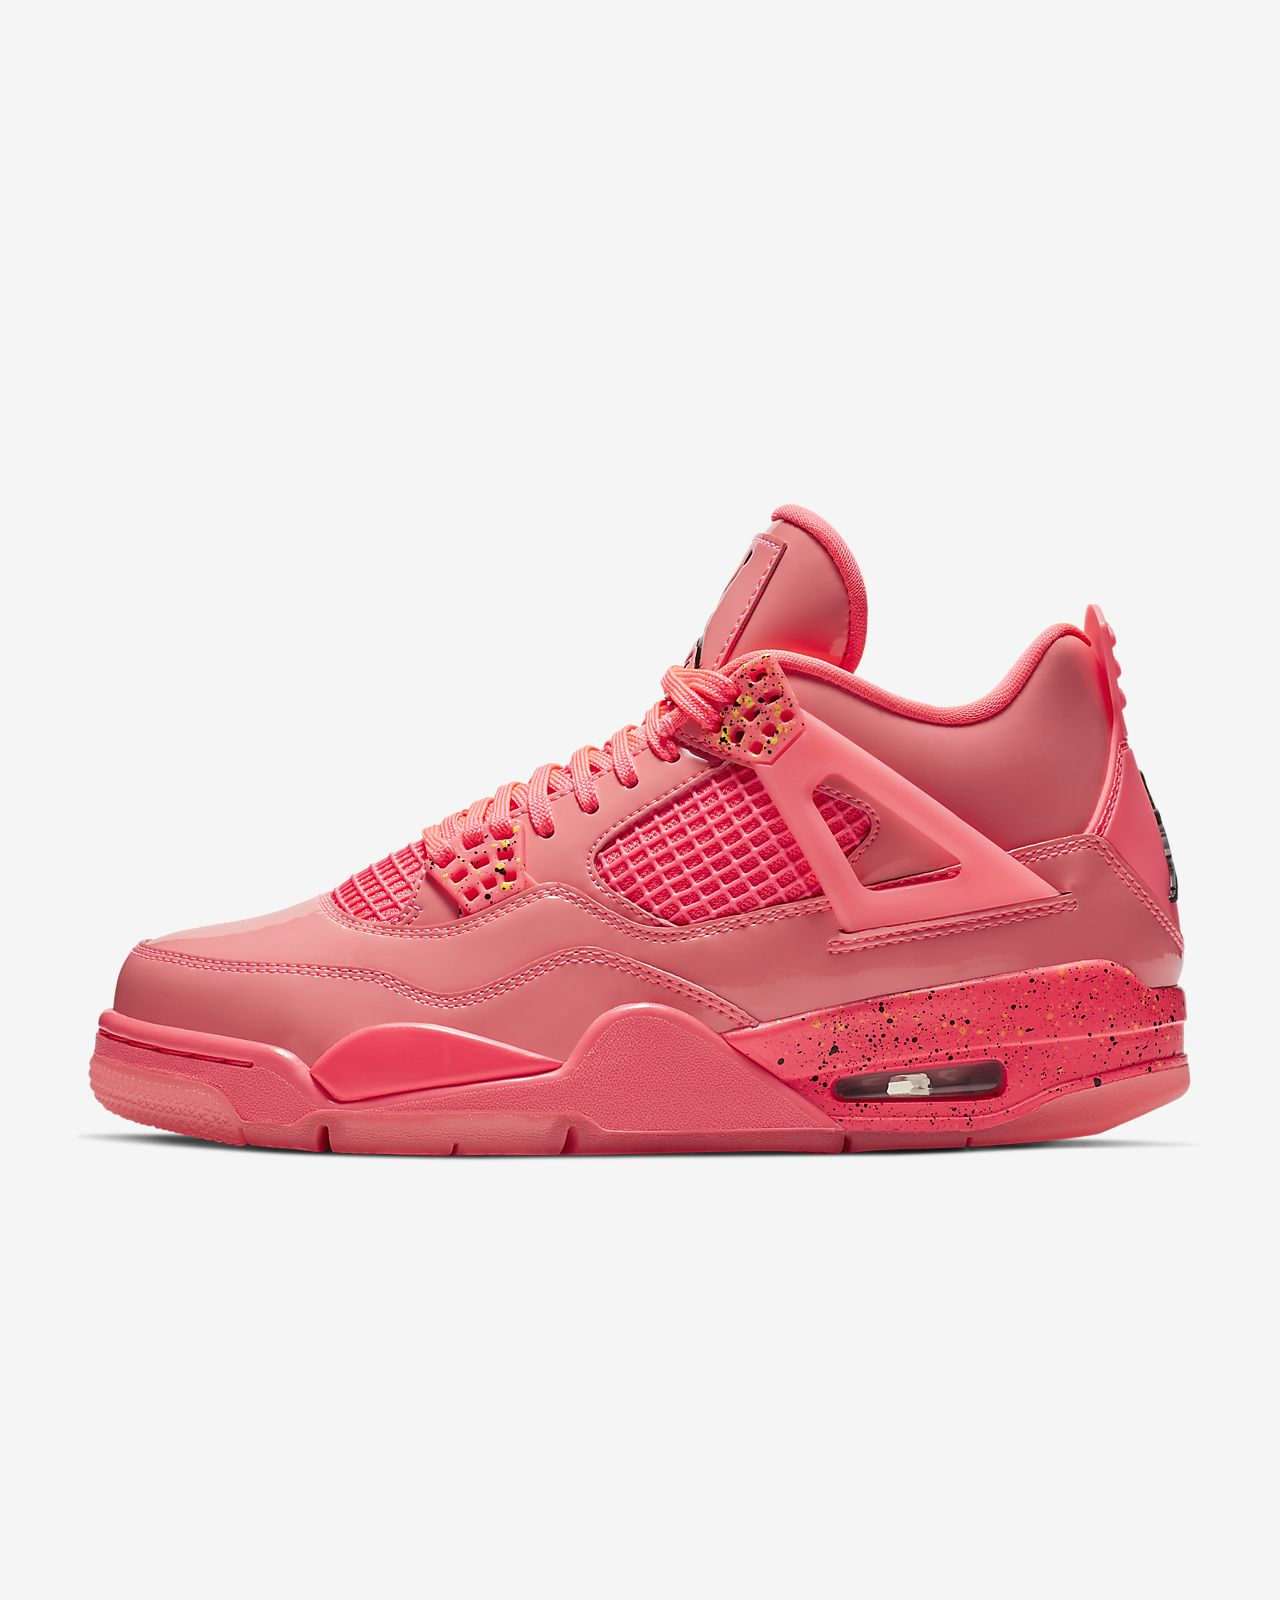 242786e0accd19 Air Jordan 4 Retro NRG Women s Shoe. Nike.com